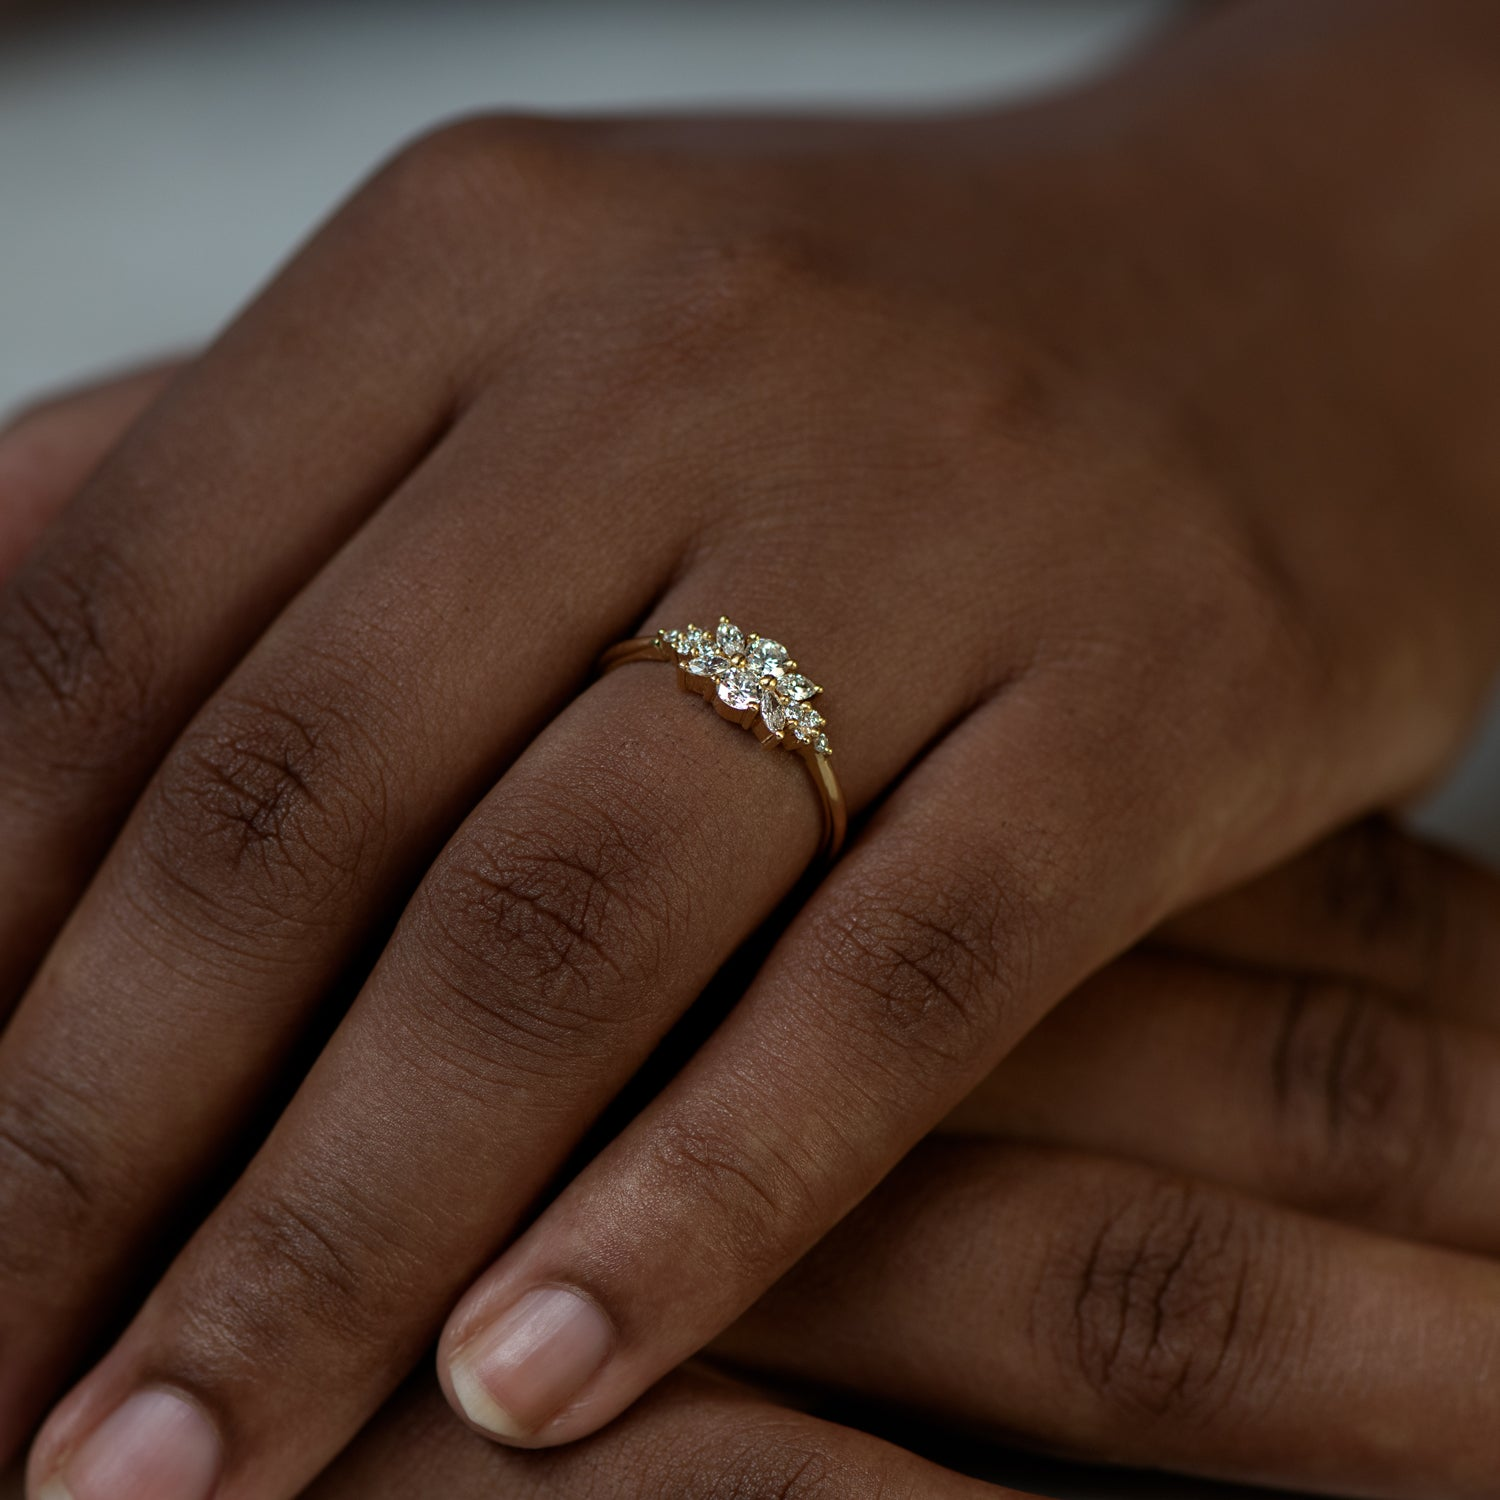 Engagement-Ring-with-a-Cluster-of-Diamonds-Small-Flora-Ring-on-finger